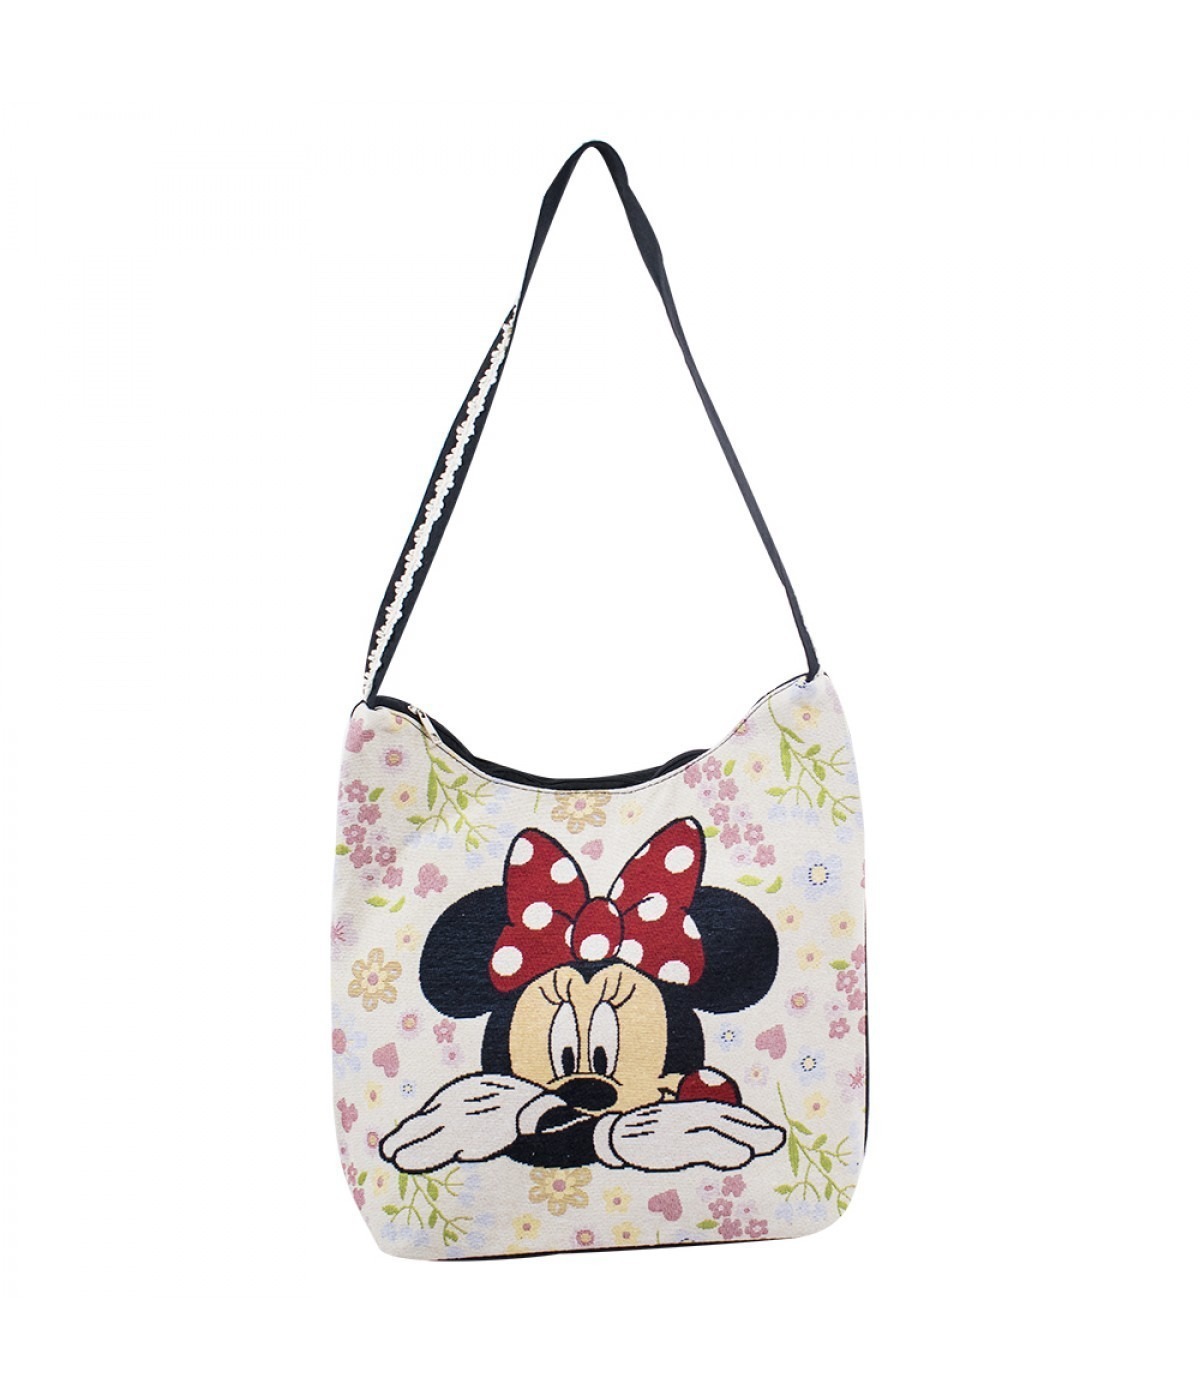 Bolsa Mickey e Minnie Mouse (Hobo) - Disney